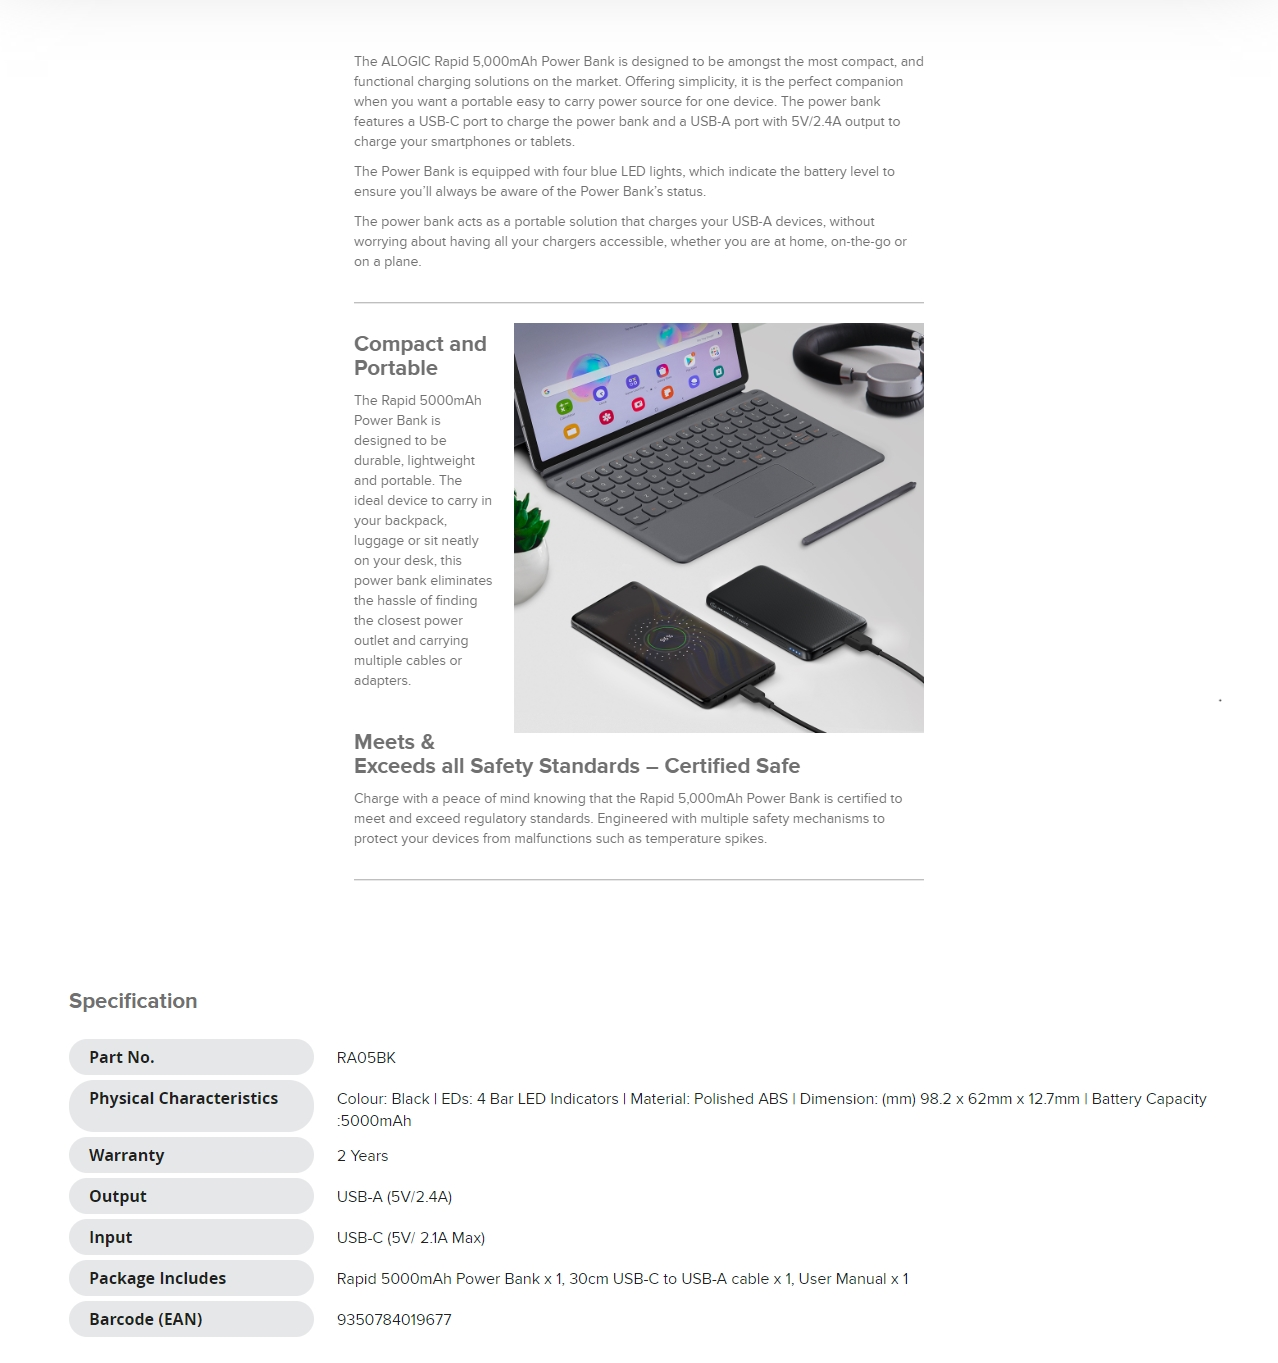 A large marketing image providing additional information about the product ALOGIC Rapid 5000mAh Power Bank - Black - Additional alt info not provided